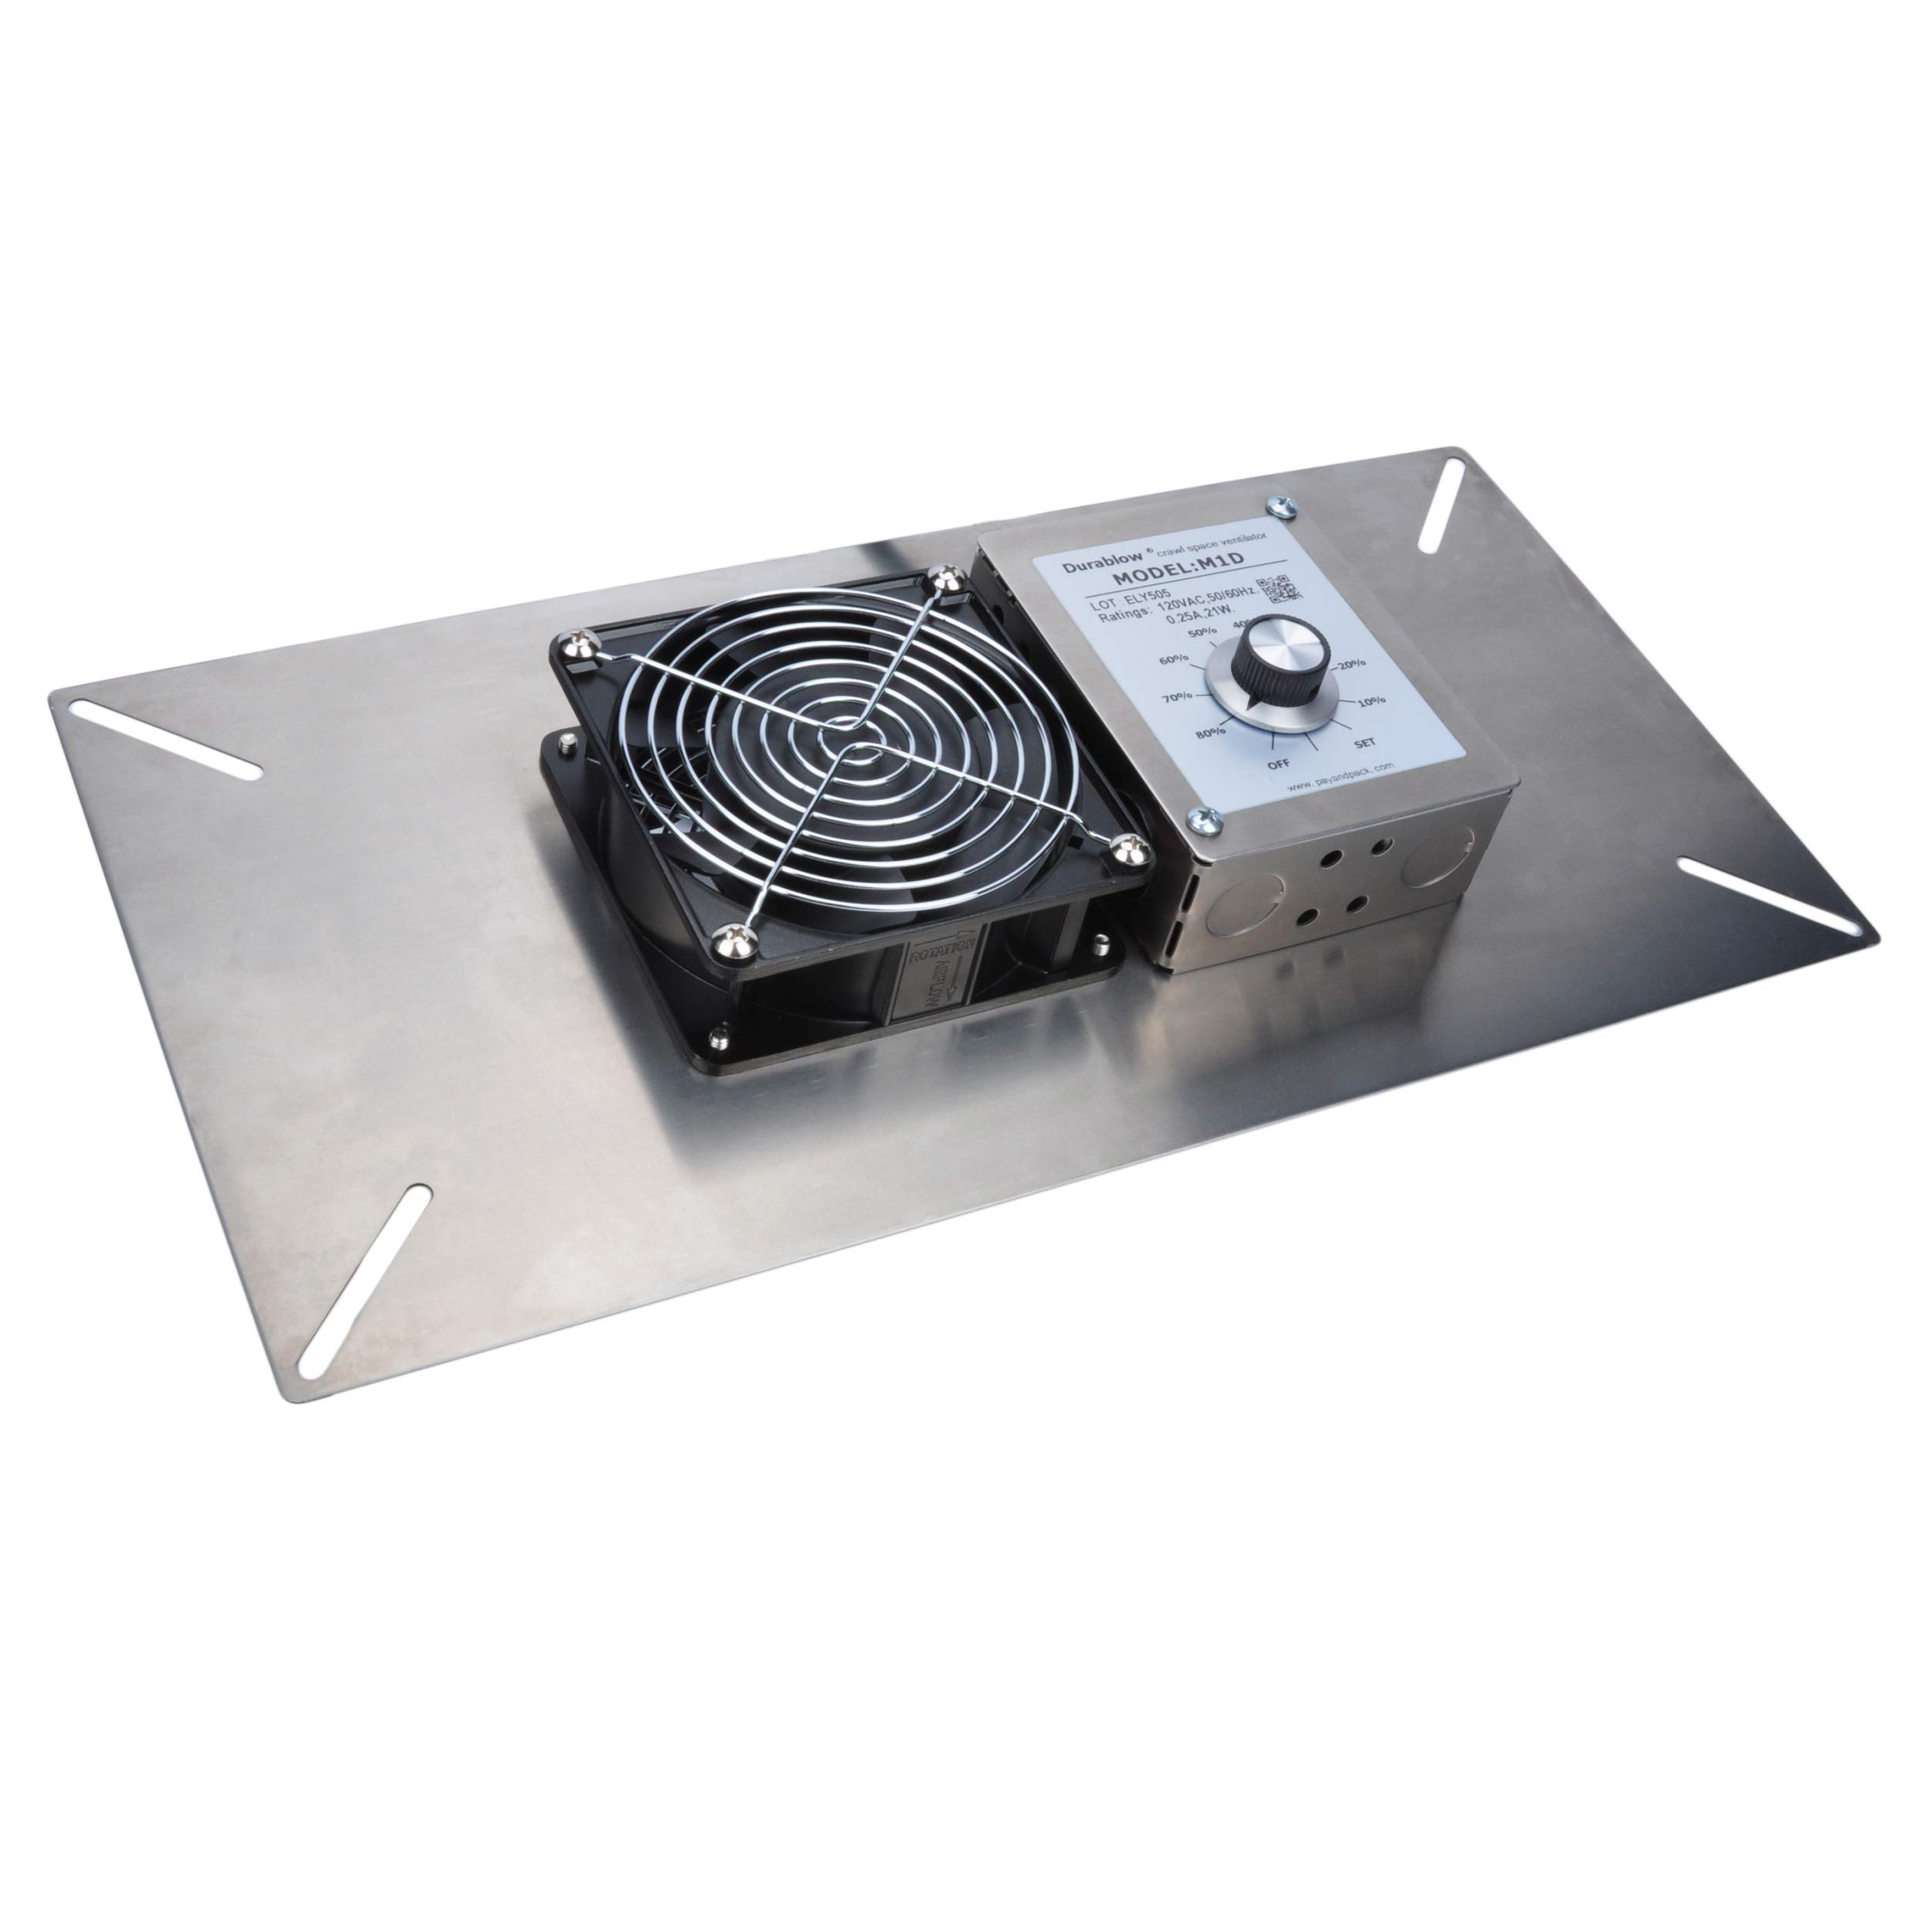 Durablow Stainless Steel 304 Crawl Space Foundation Fan Ventilator / Built-in Dehumidistat / Freeze Protection Thermostat MFB M1D